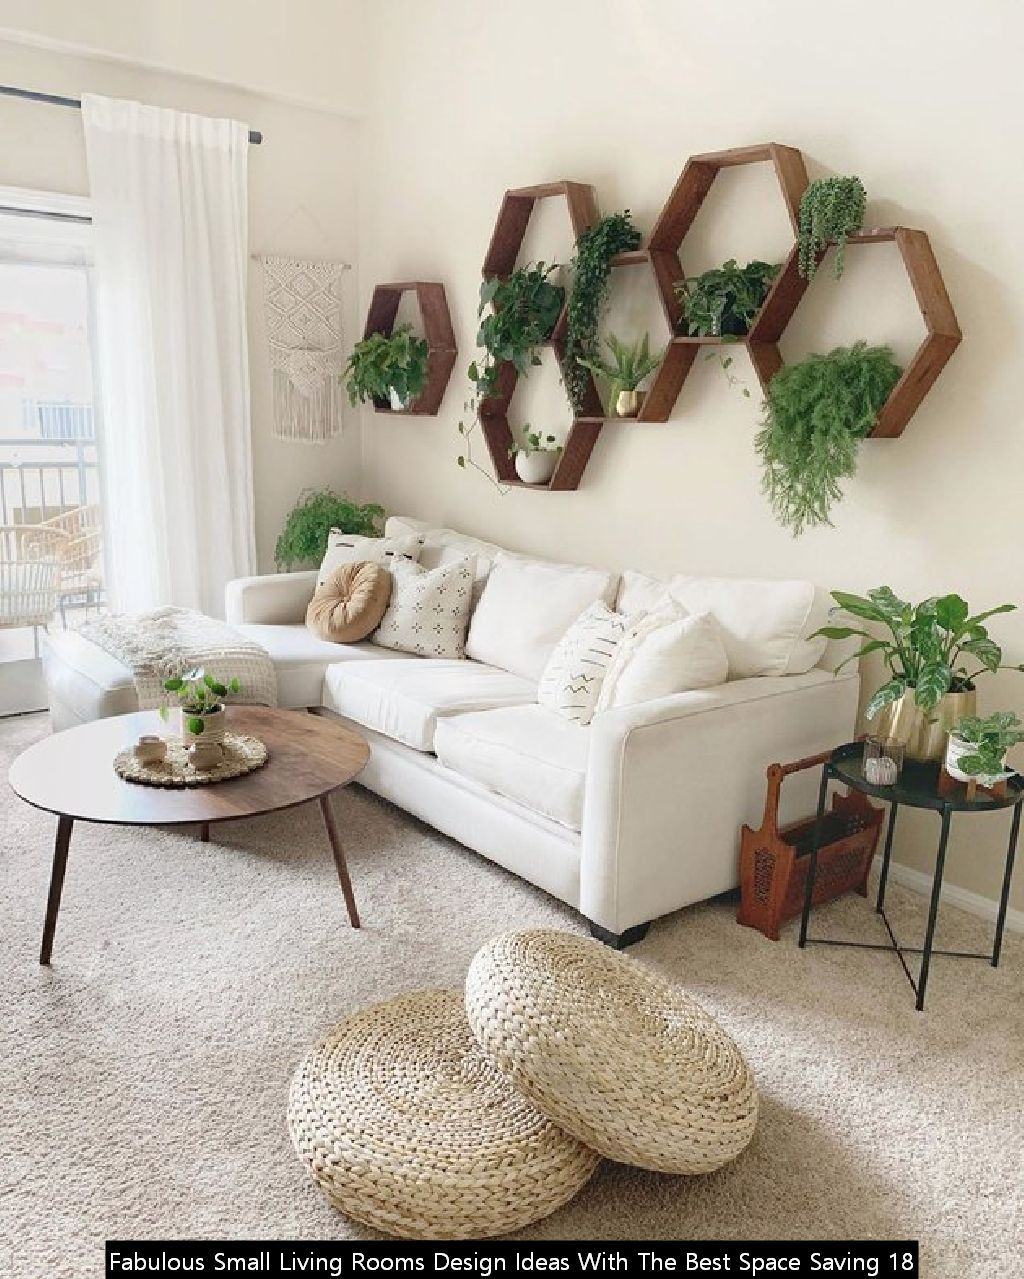 20 Fabulous Small Living Rooms Design Ideas With The Best Space Saving In 2020 Cozy Interior Design Living Room Decor Apartment Small Living Room Design #space #saving #living #room #ideas